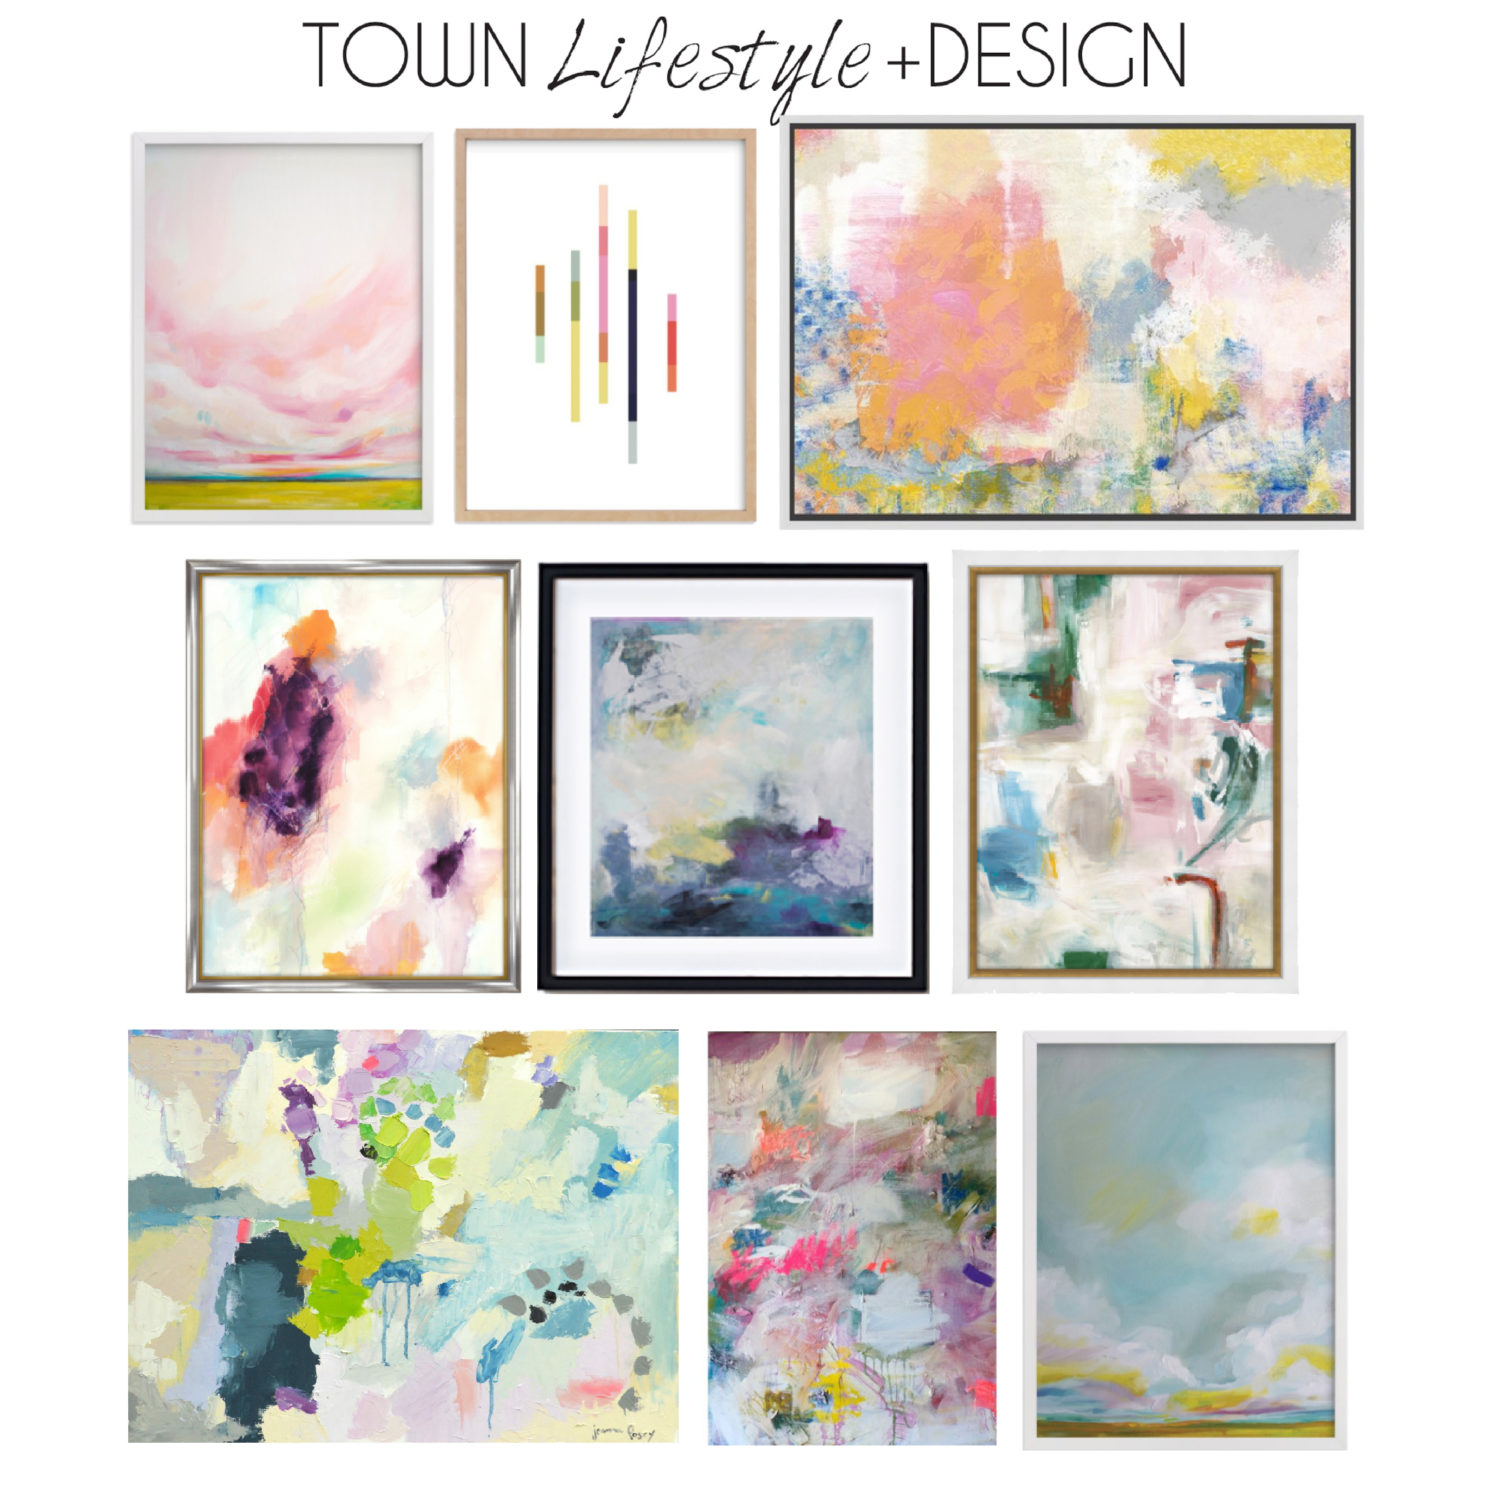 Town Lifestyle and Design || Introducing Project Houston Heights || Artwork Round Up